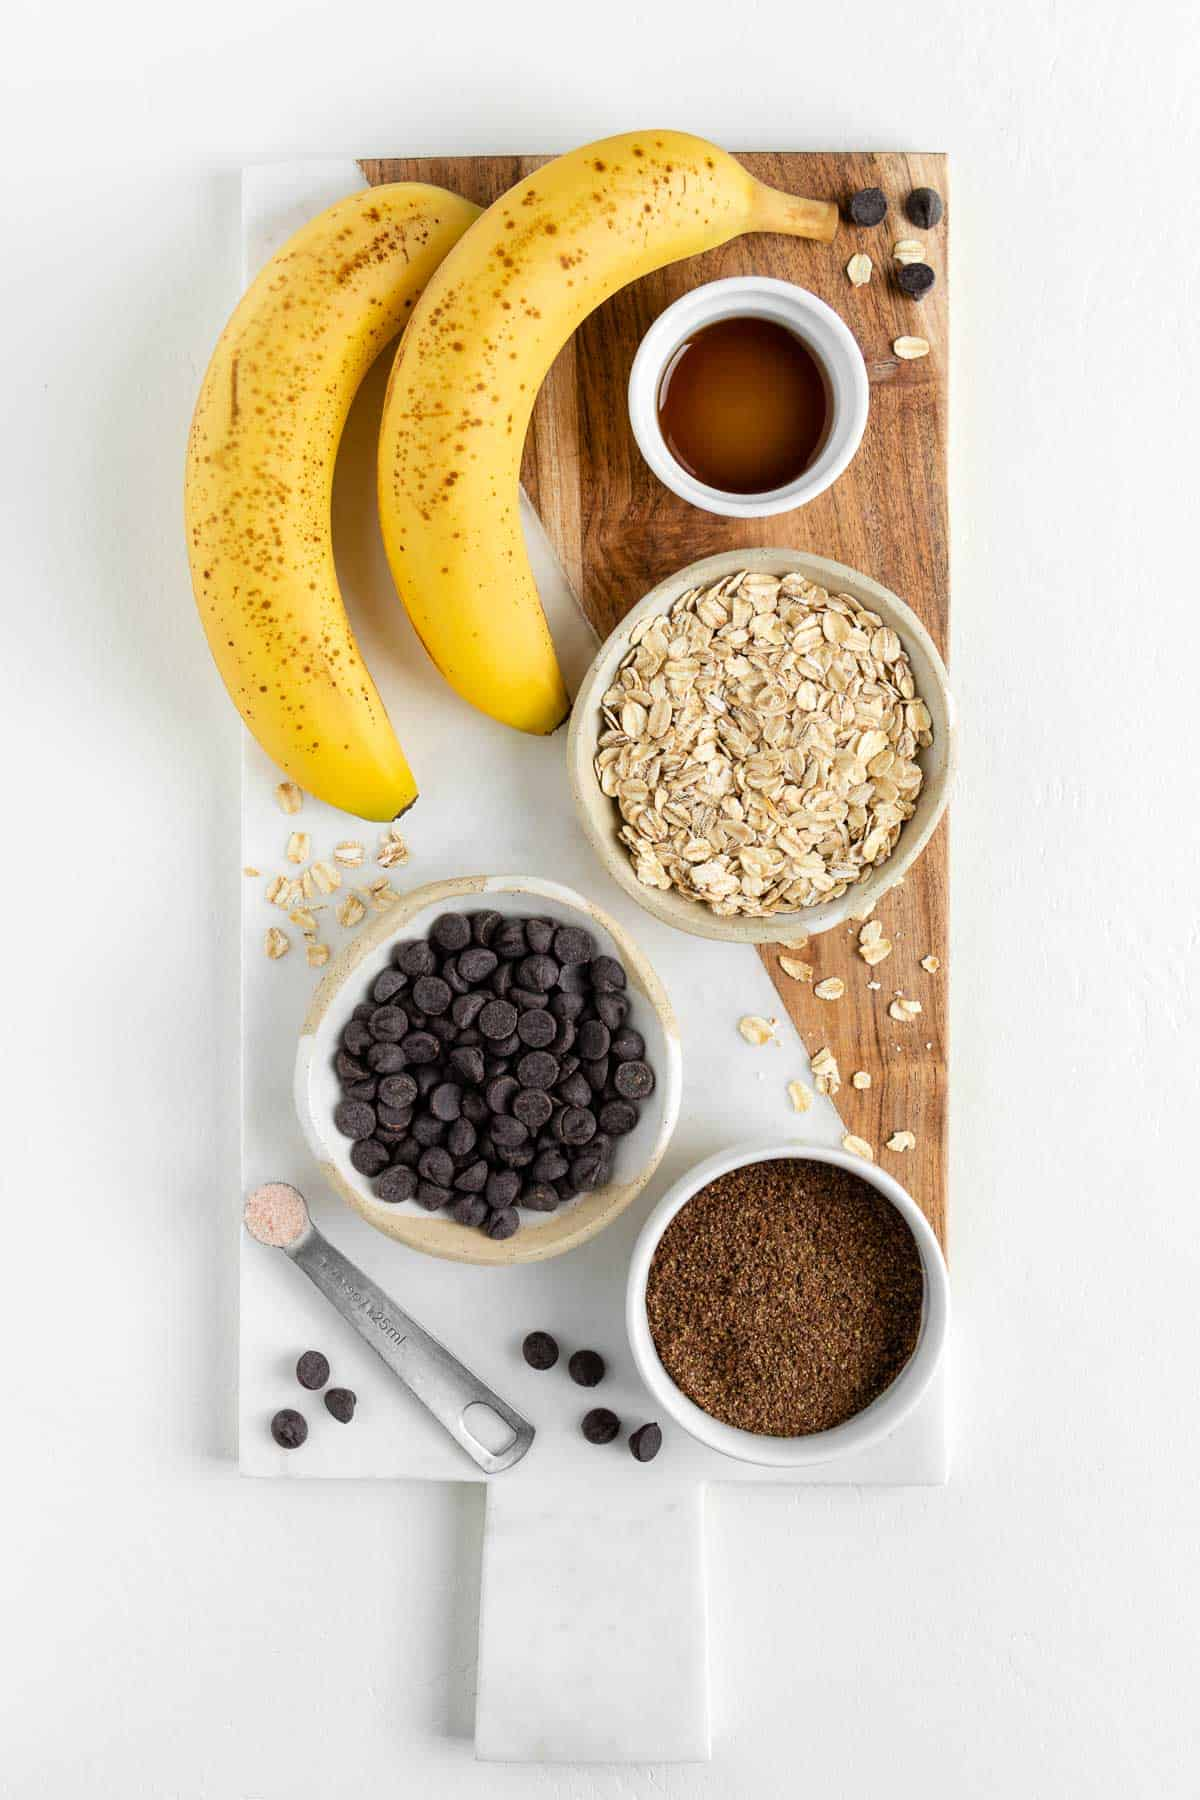 a white marble board topped with oats, vanilla, ground flaxseed, chocolate, and fruit